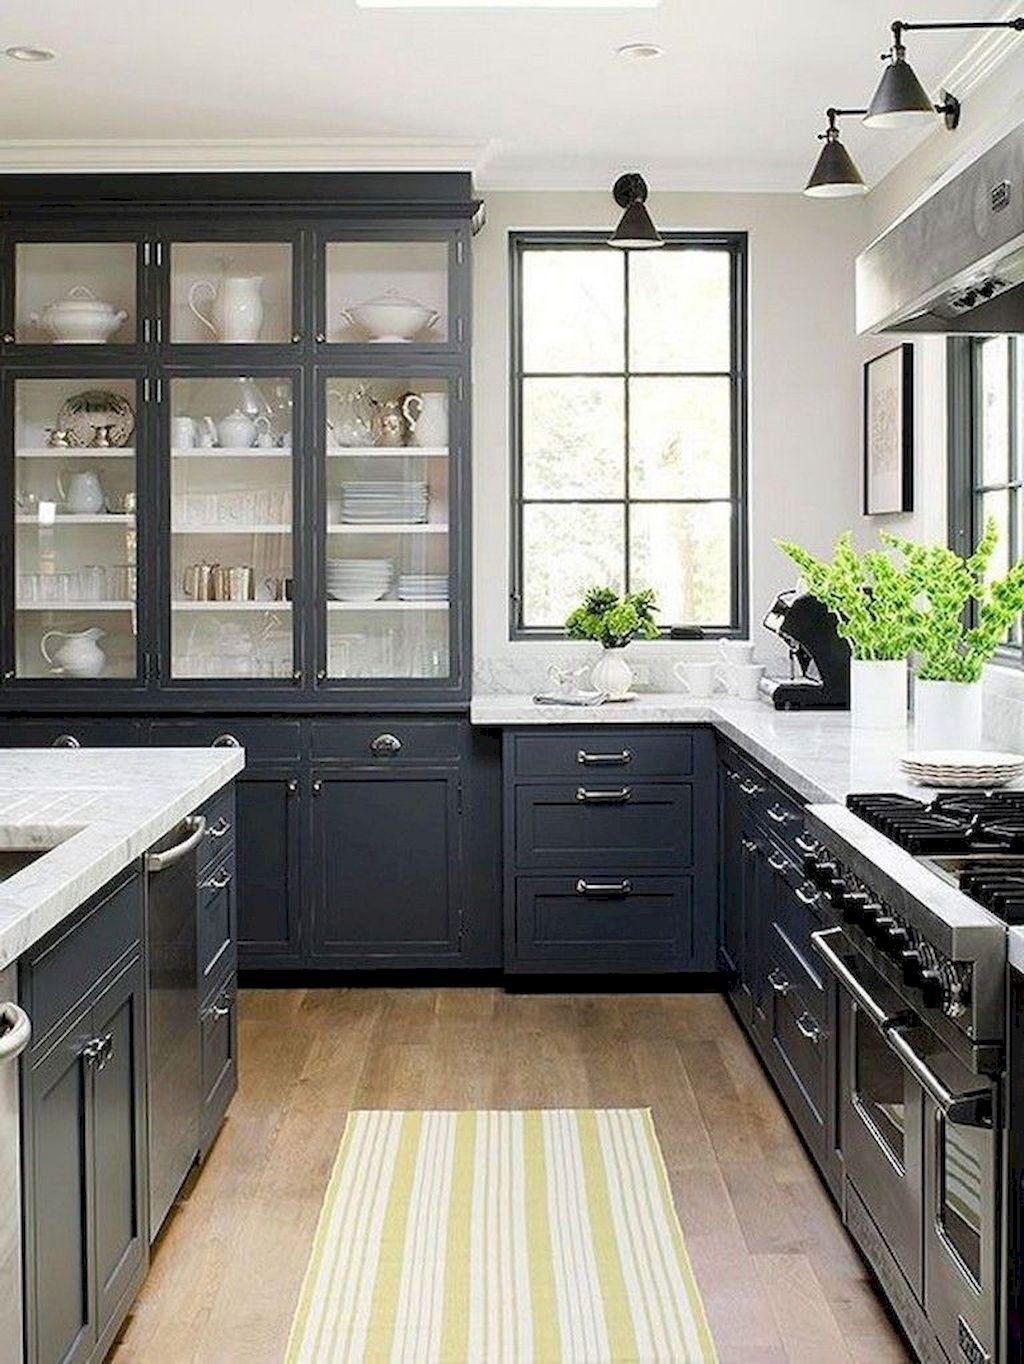 Adorable 65 Gray Kitchen Cabinet Makeover Design Ideas Https Domakeover Com 65 Gray Kitchen Ca Grey Kitchen Cabinets Kitchen Remodel Small Kitchen Renovation